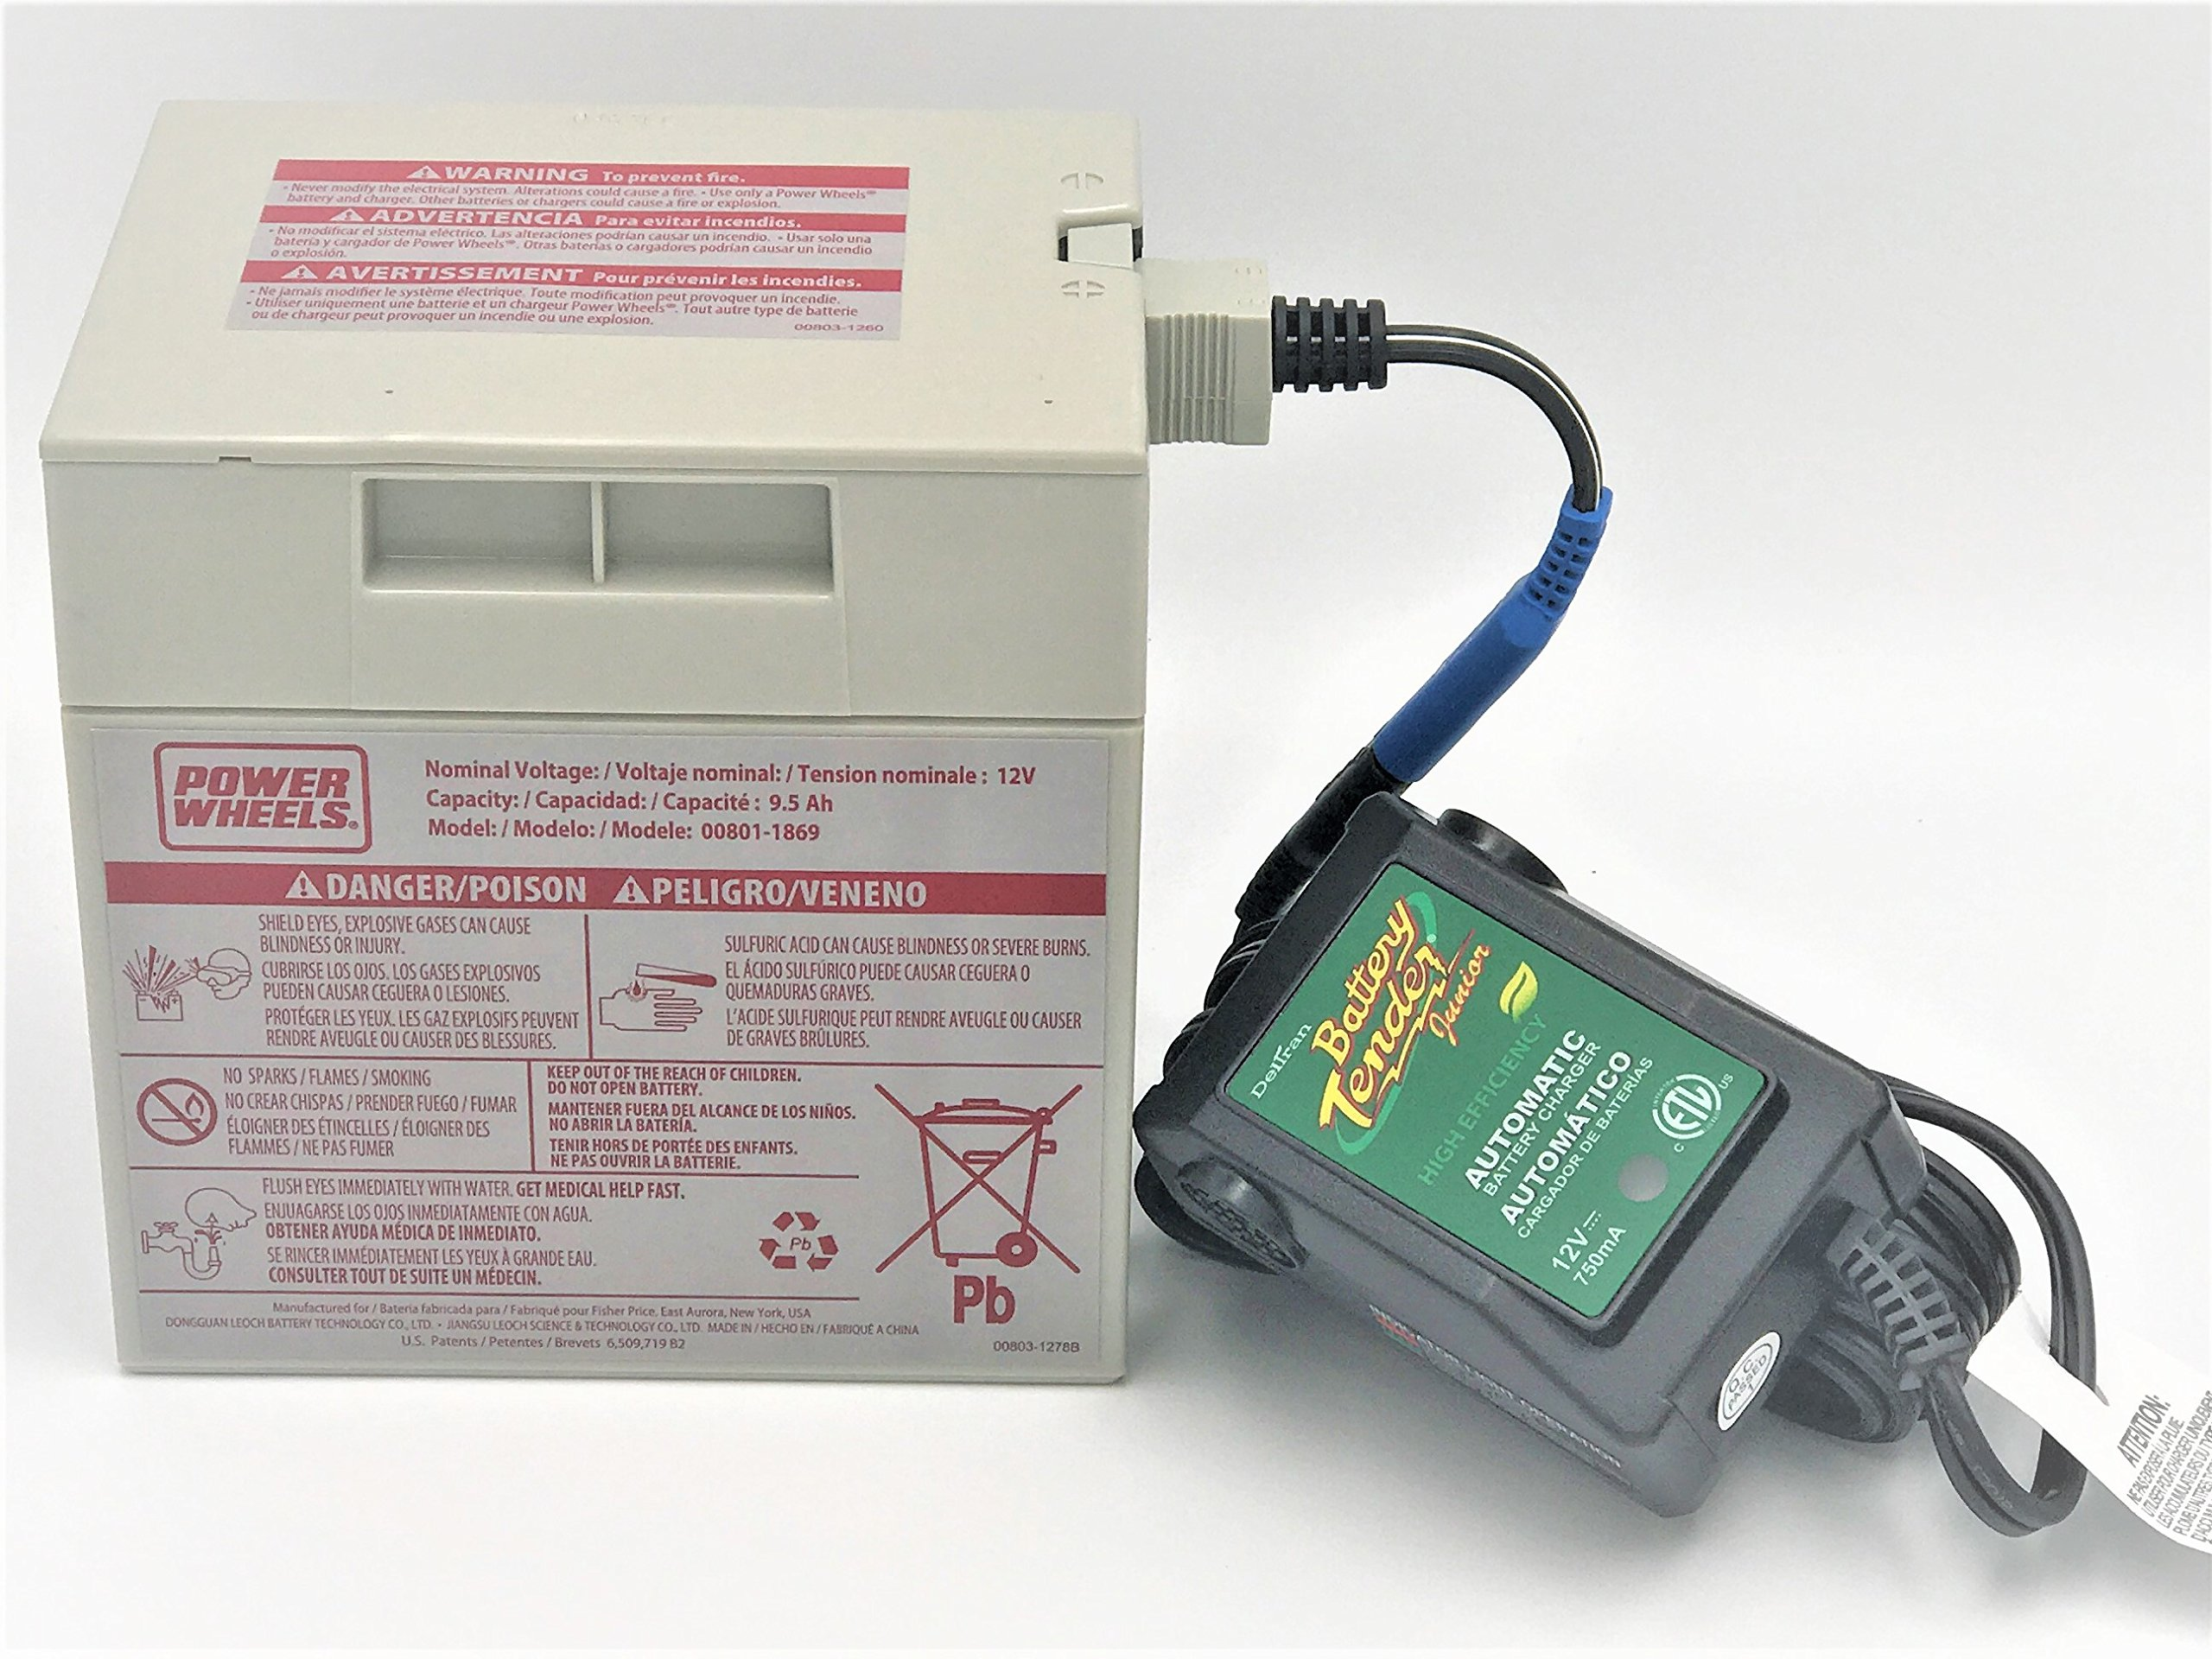 Power Wheels Gray 12 Volt Battery (00801-0638) and Automatic Battery Tender 12V Quick Charger (021-0123) Combo Pack with quick connect harness by CBC